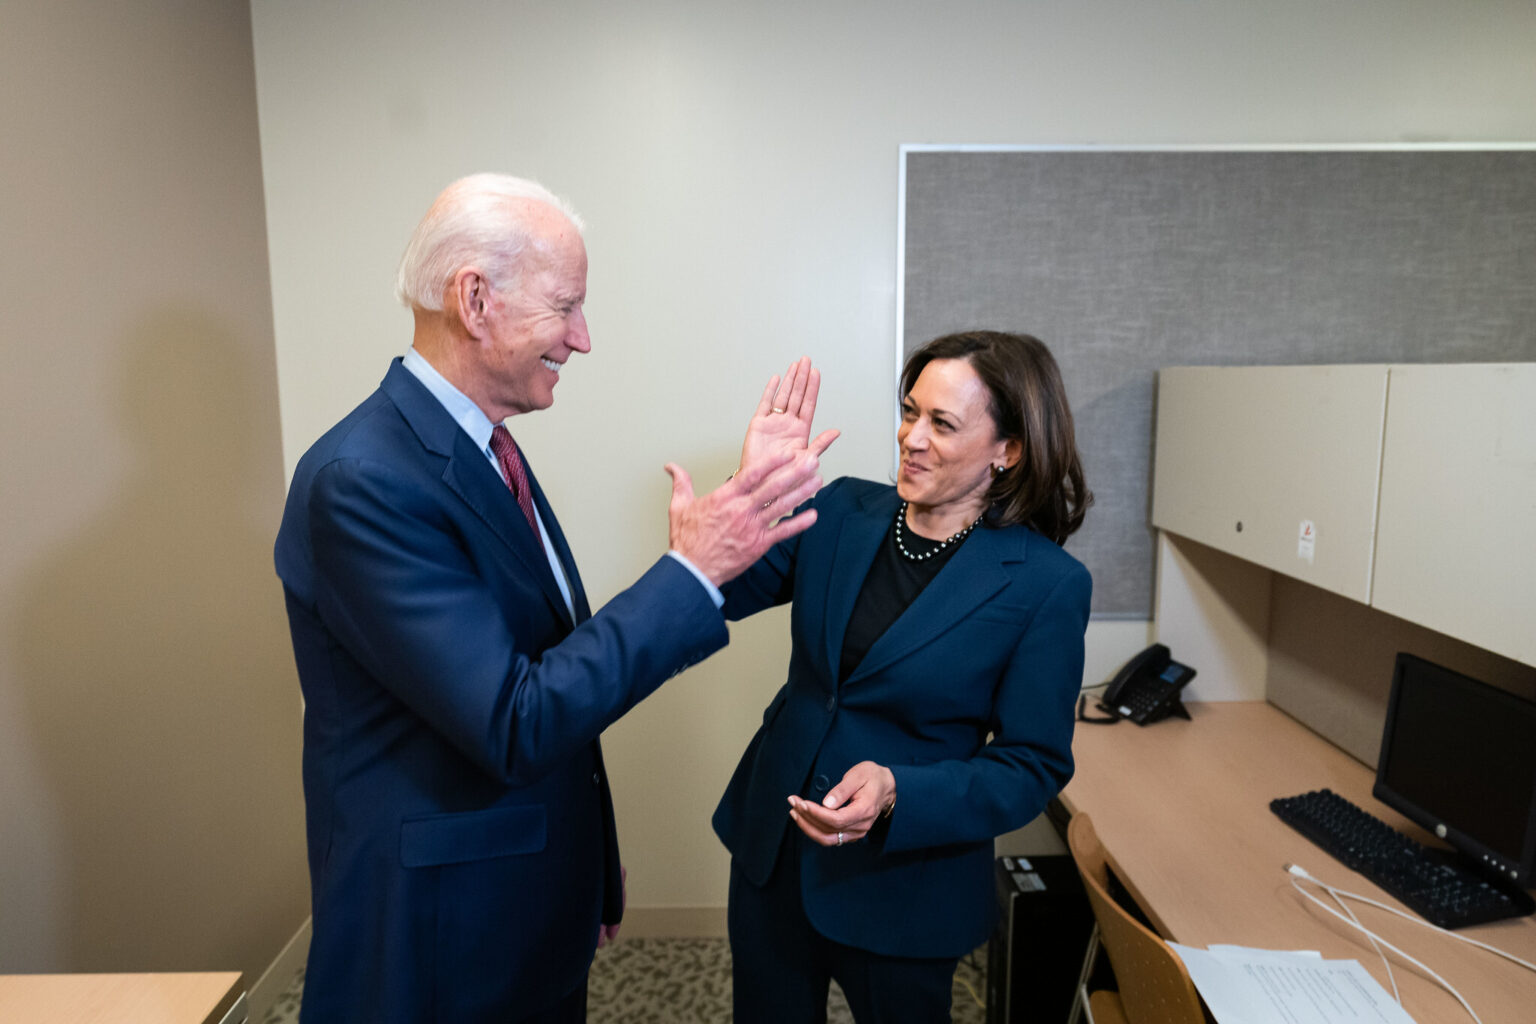 Oil Change U.S. endorses Joe Biden and Kamala Harris